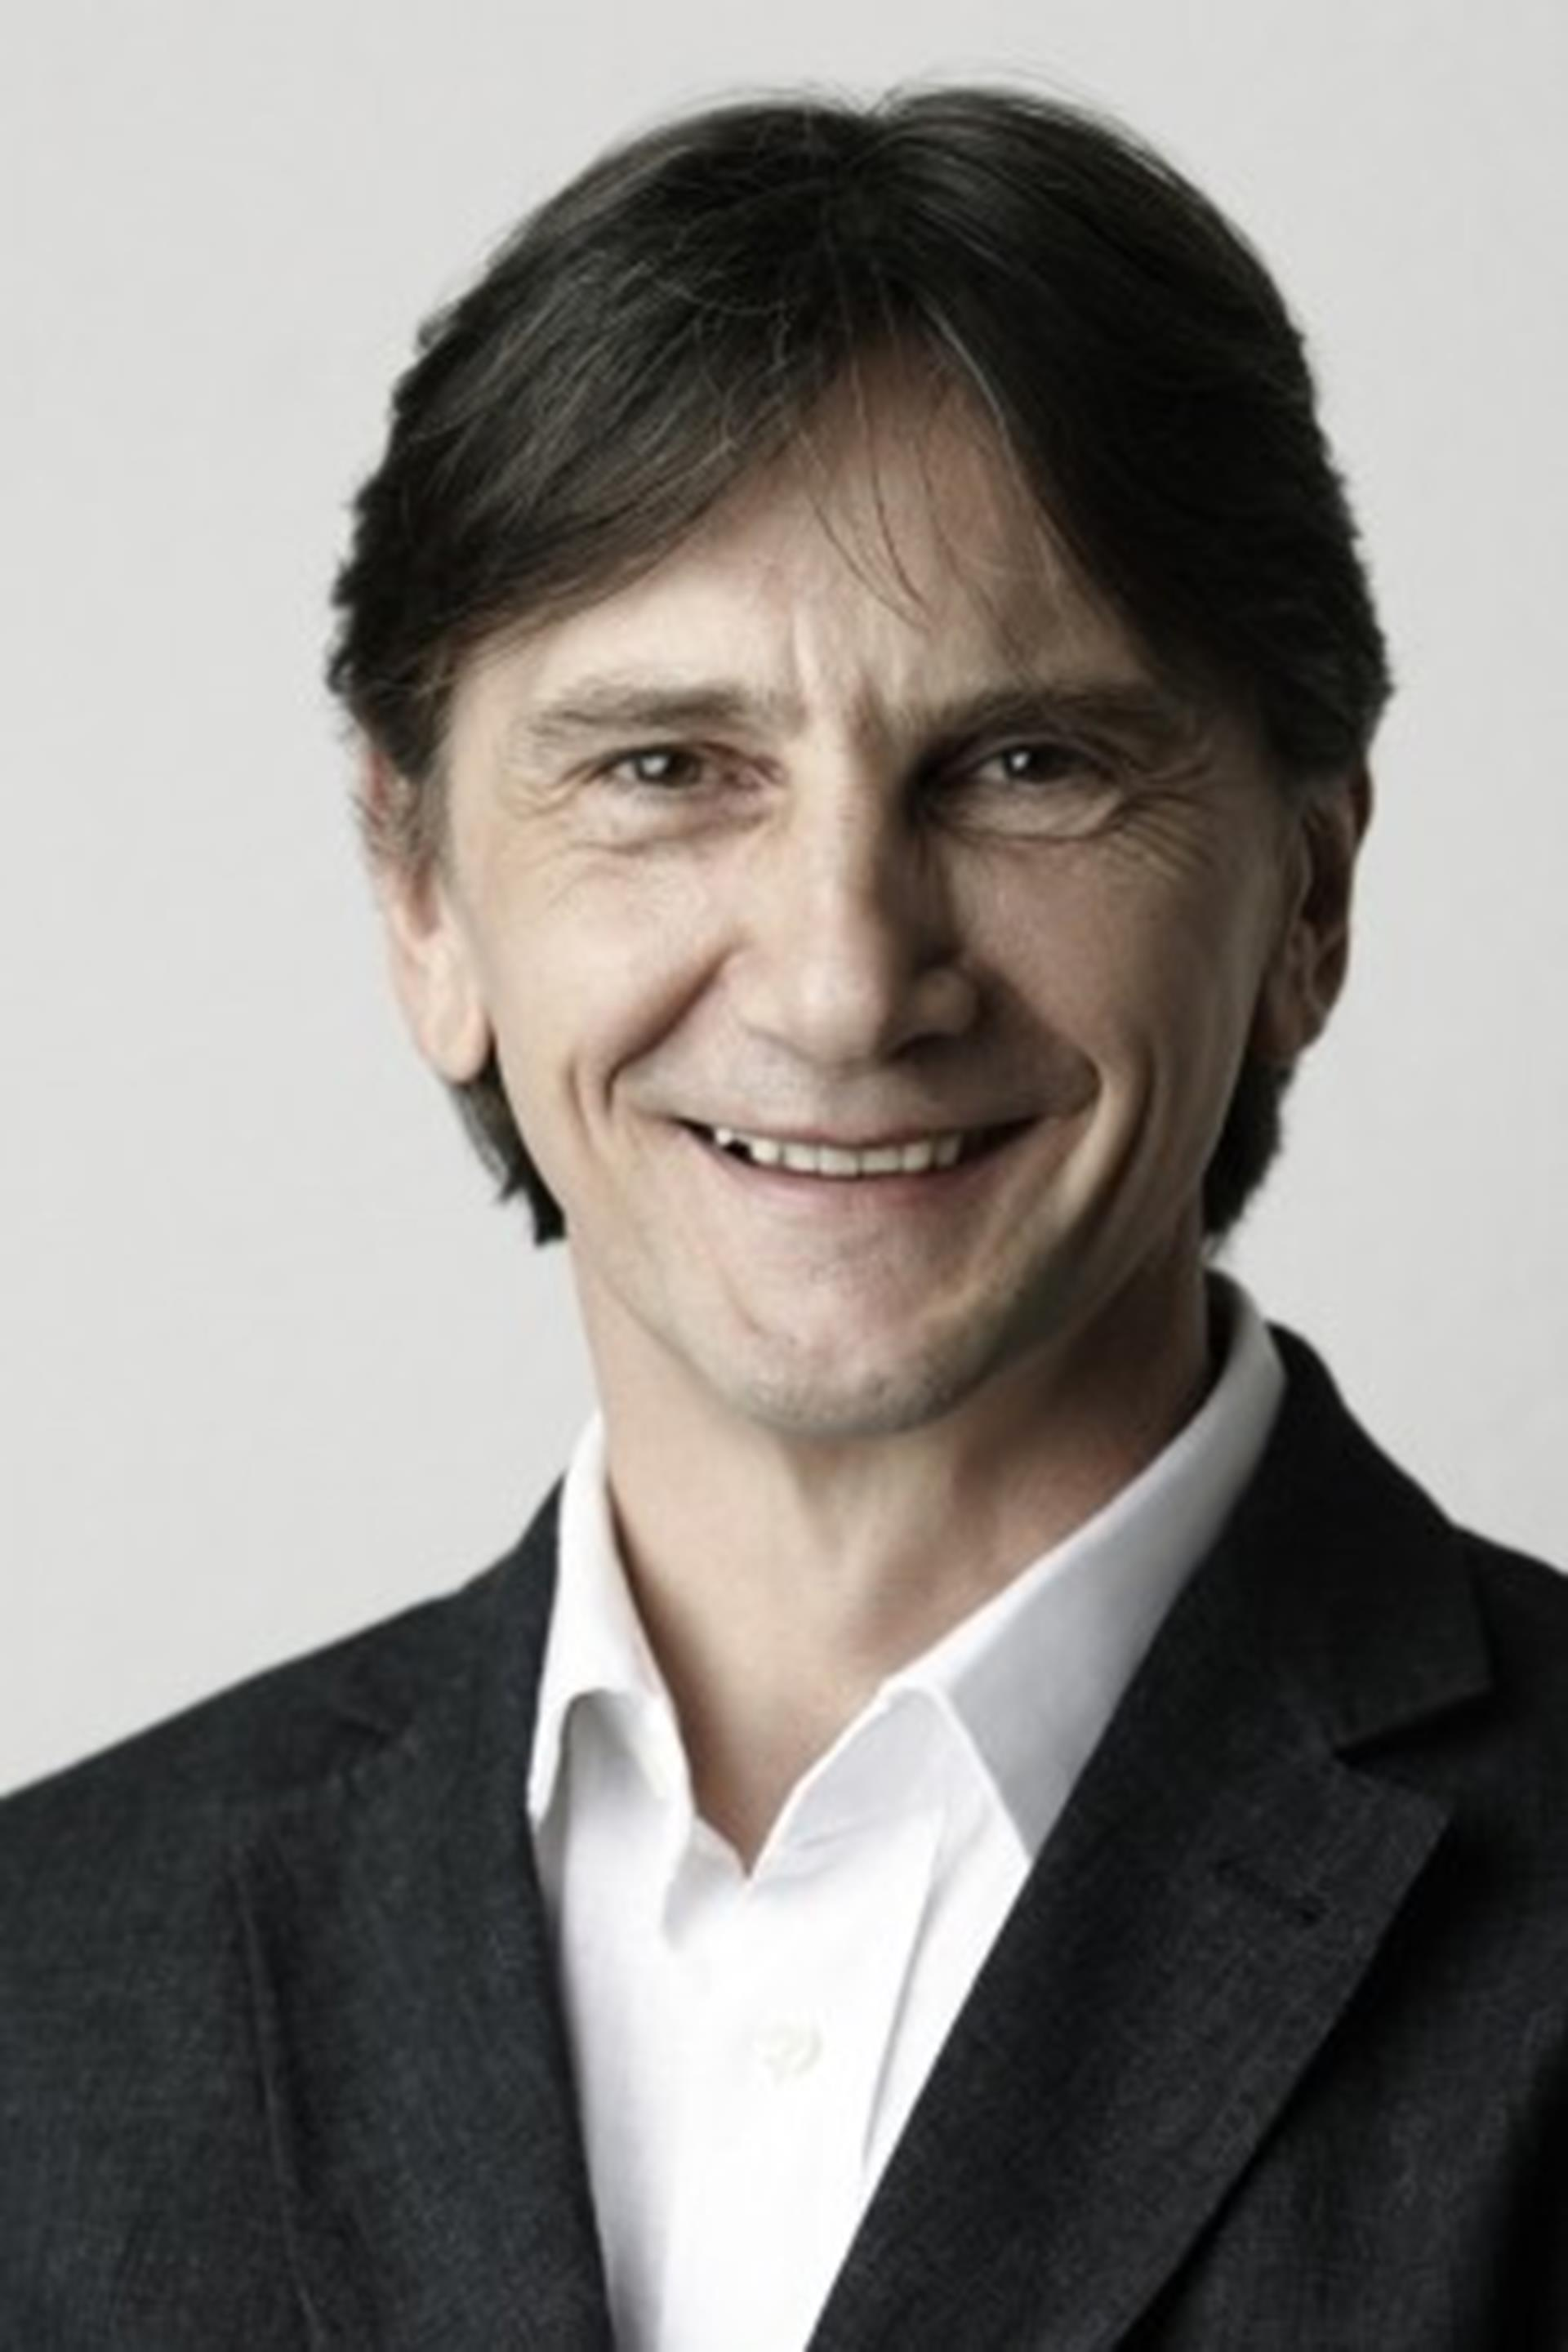 Edgar Heinrich, New Head of Design for BMW Motorrad